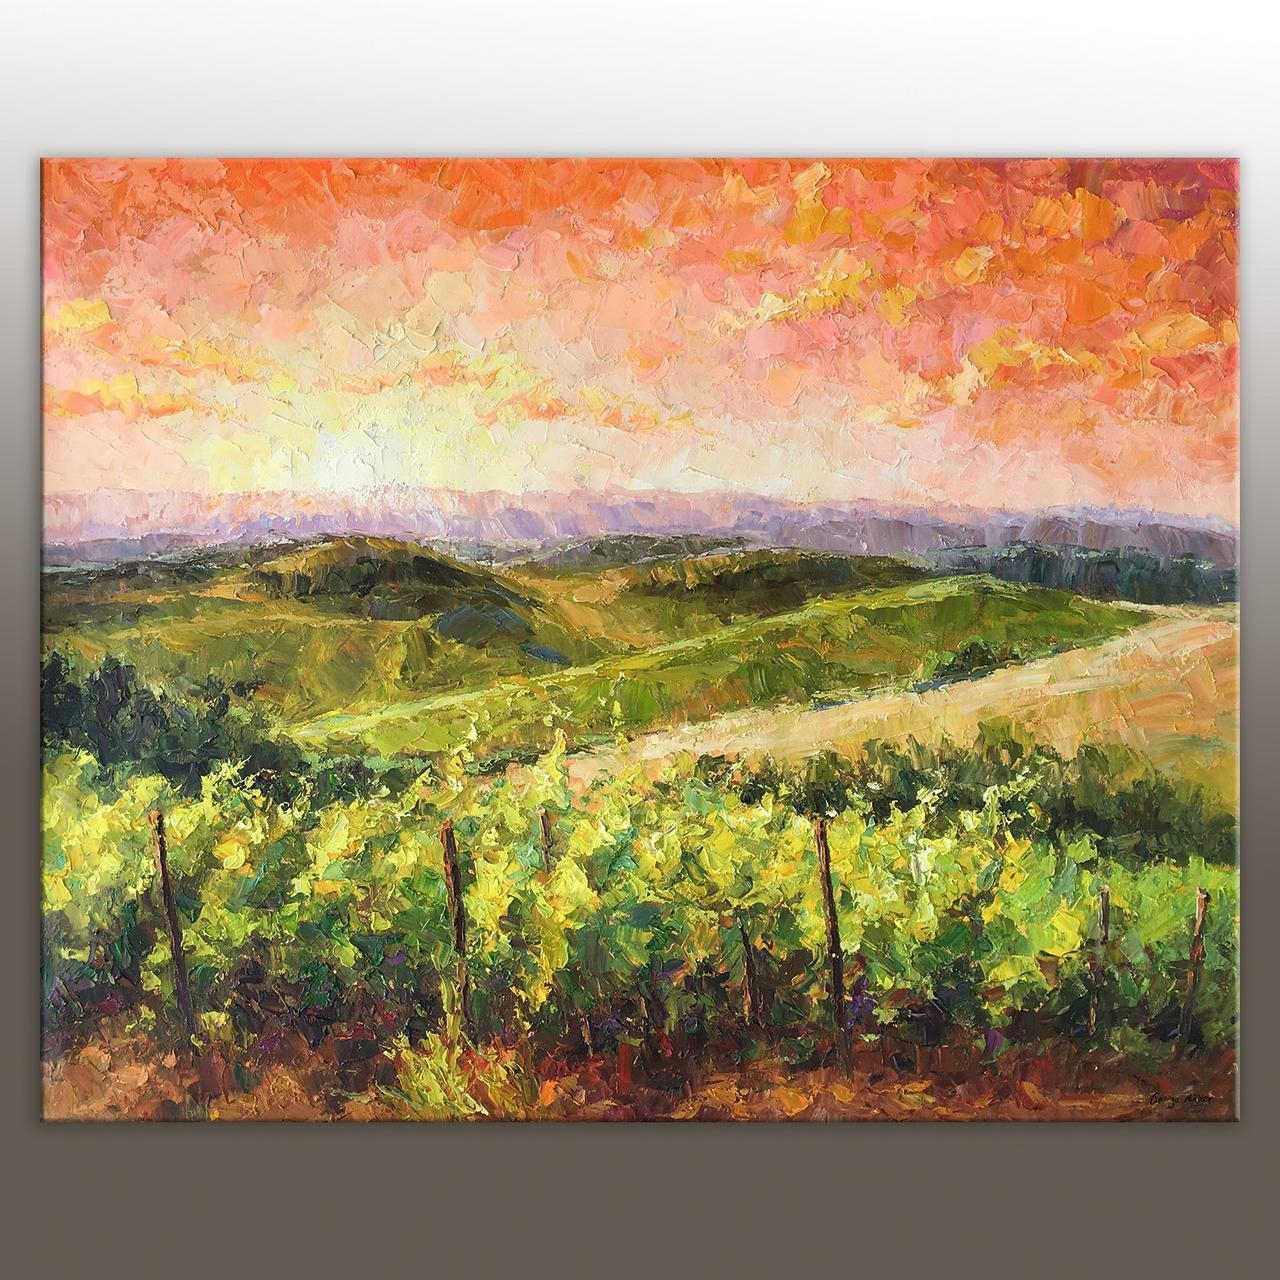 Oil Painting Italian Tuscany Vineyard Landscape Painting Throughout Vineyard Wall Art (View 20 of 20)